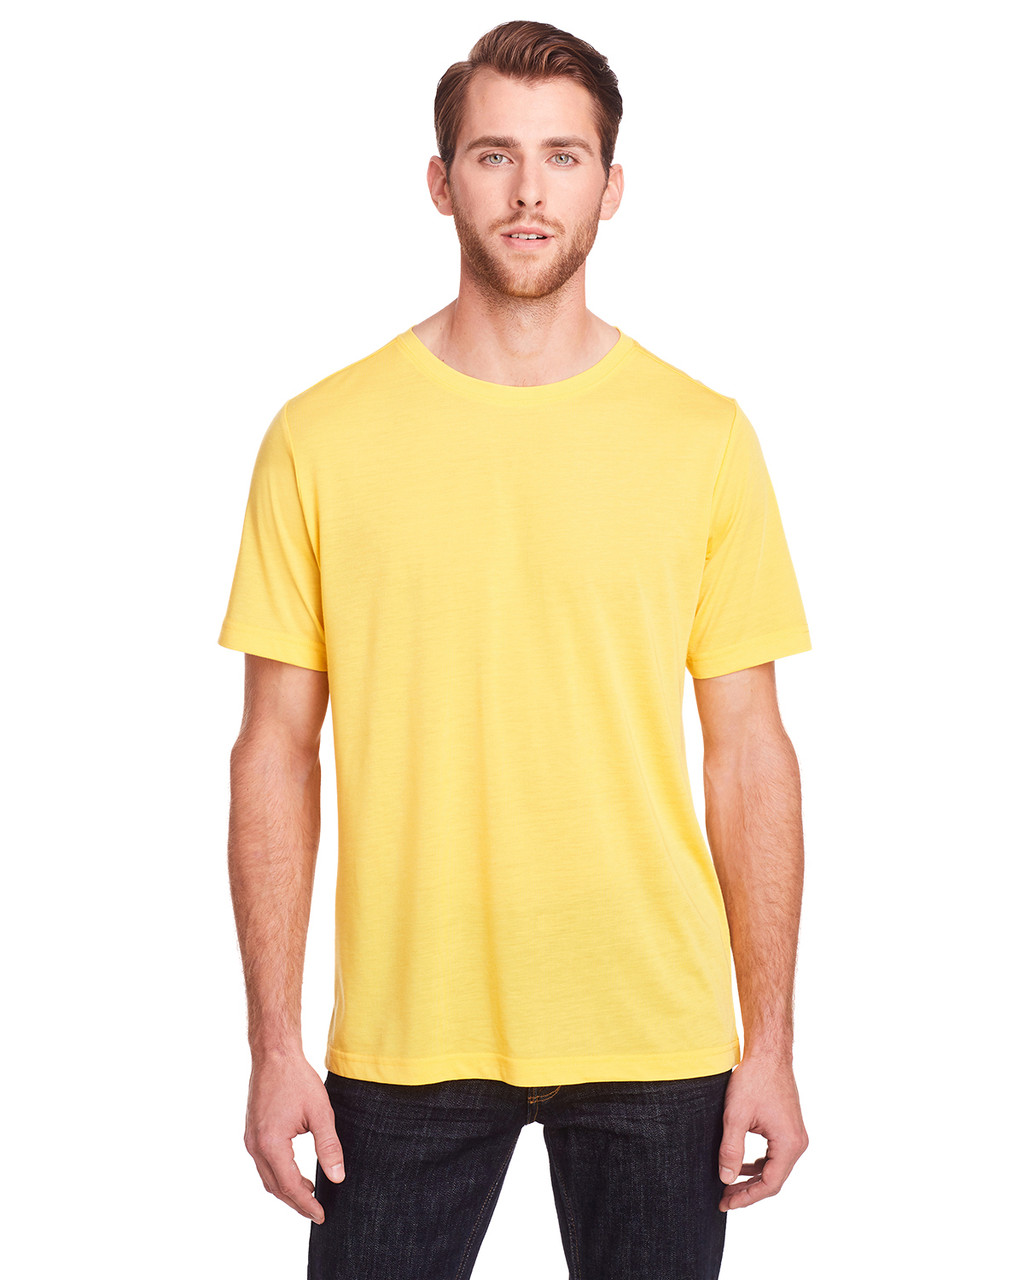 Campus Gold - CE111 Core 365 Adult Fusion ChromaSoft Performance T-Shirt | BlankClothing.ca